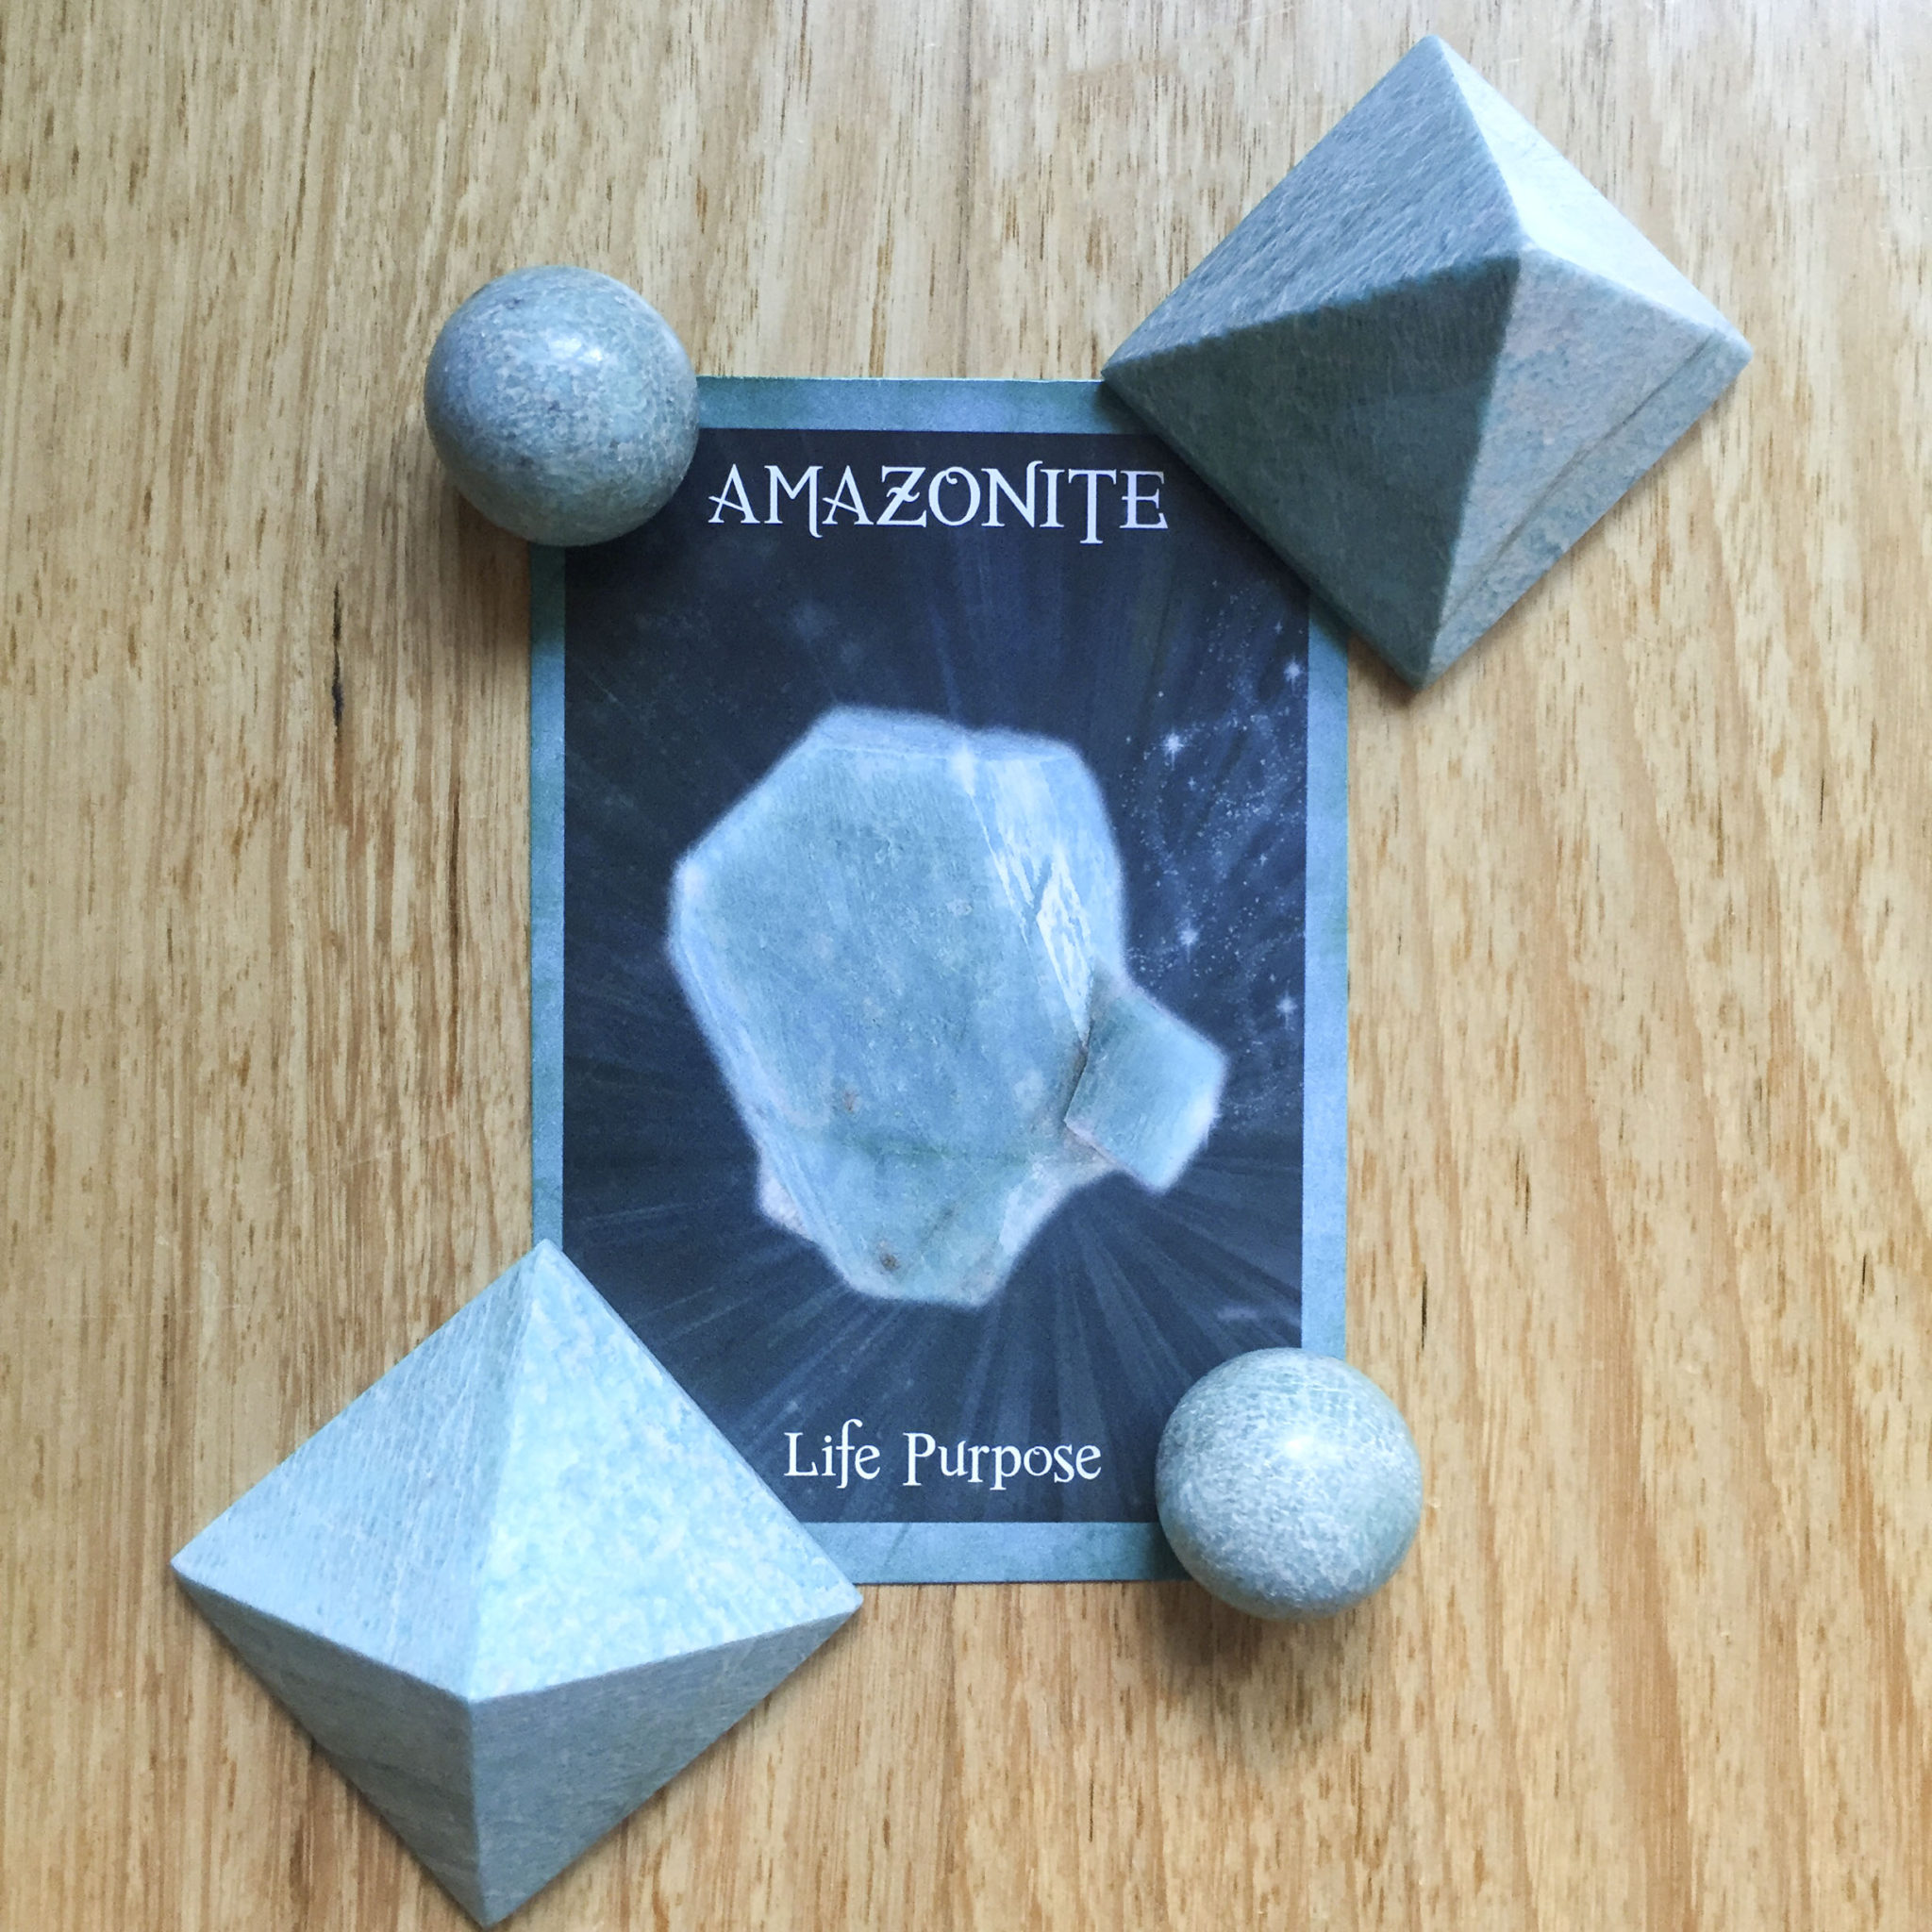 Amazonite - Life Purpose